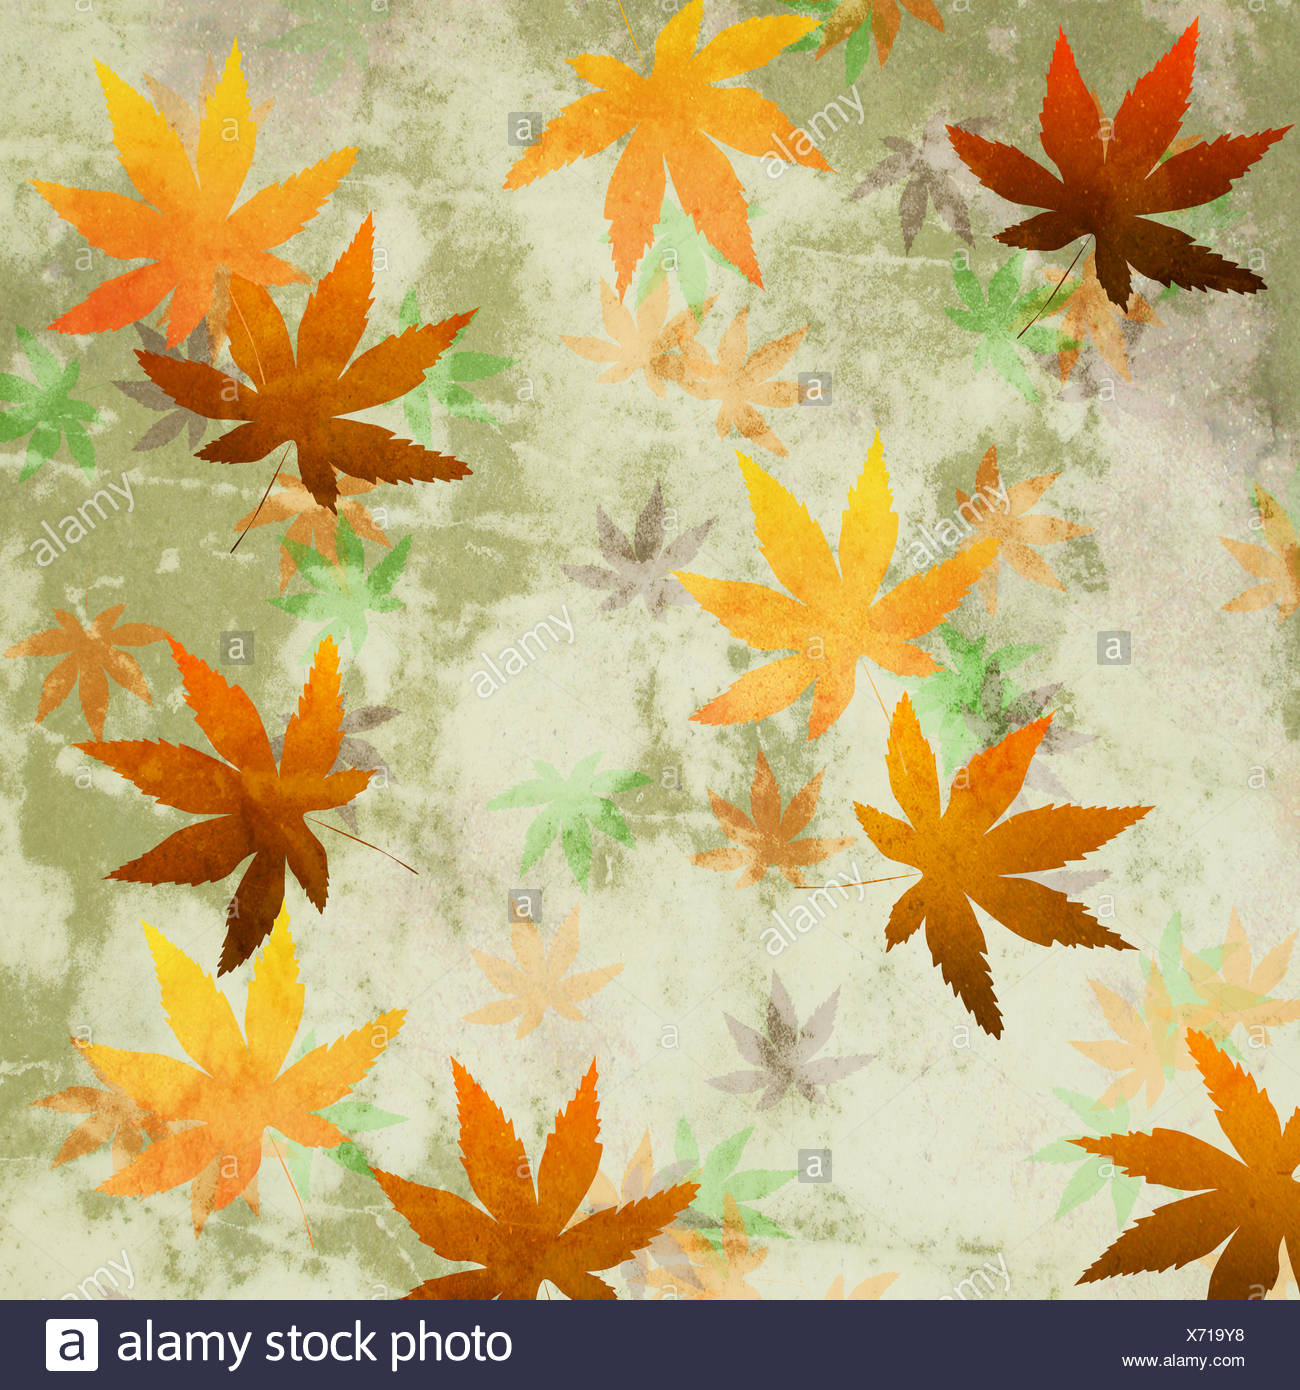 Leaf Leaves Wallpaper Backdrop Background Foliage Texture